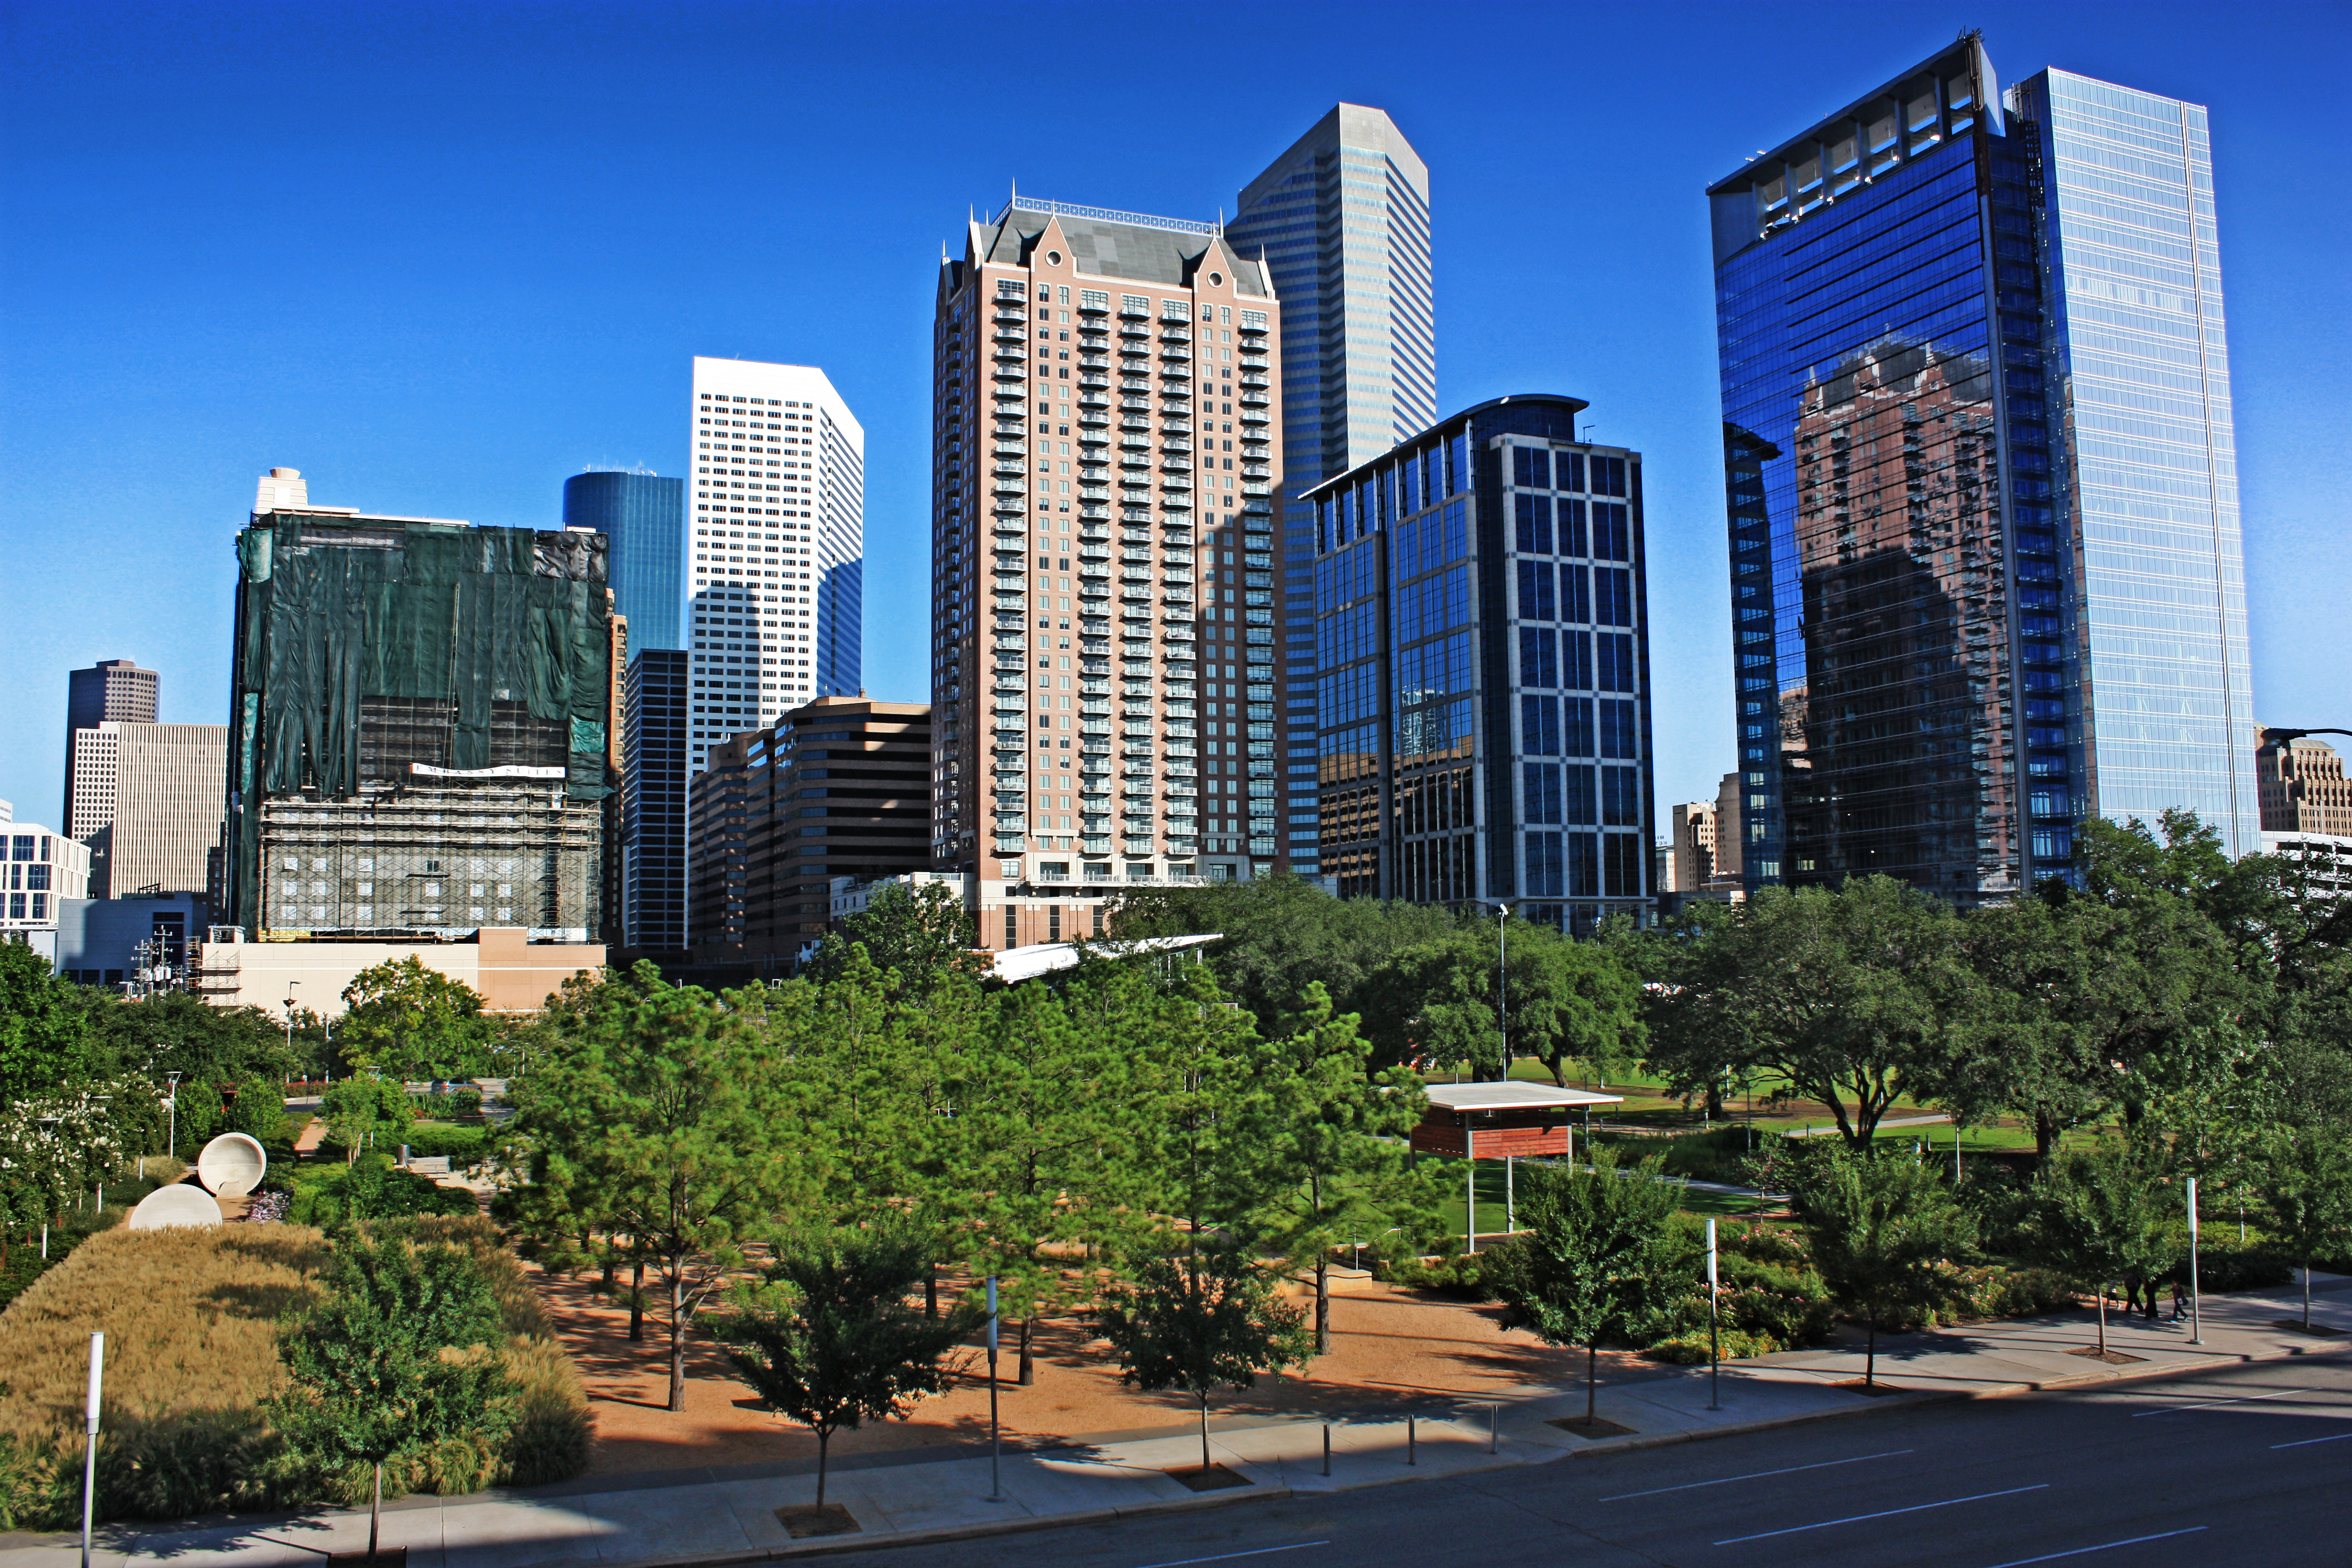 Discovery Green park in downtown.